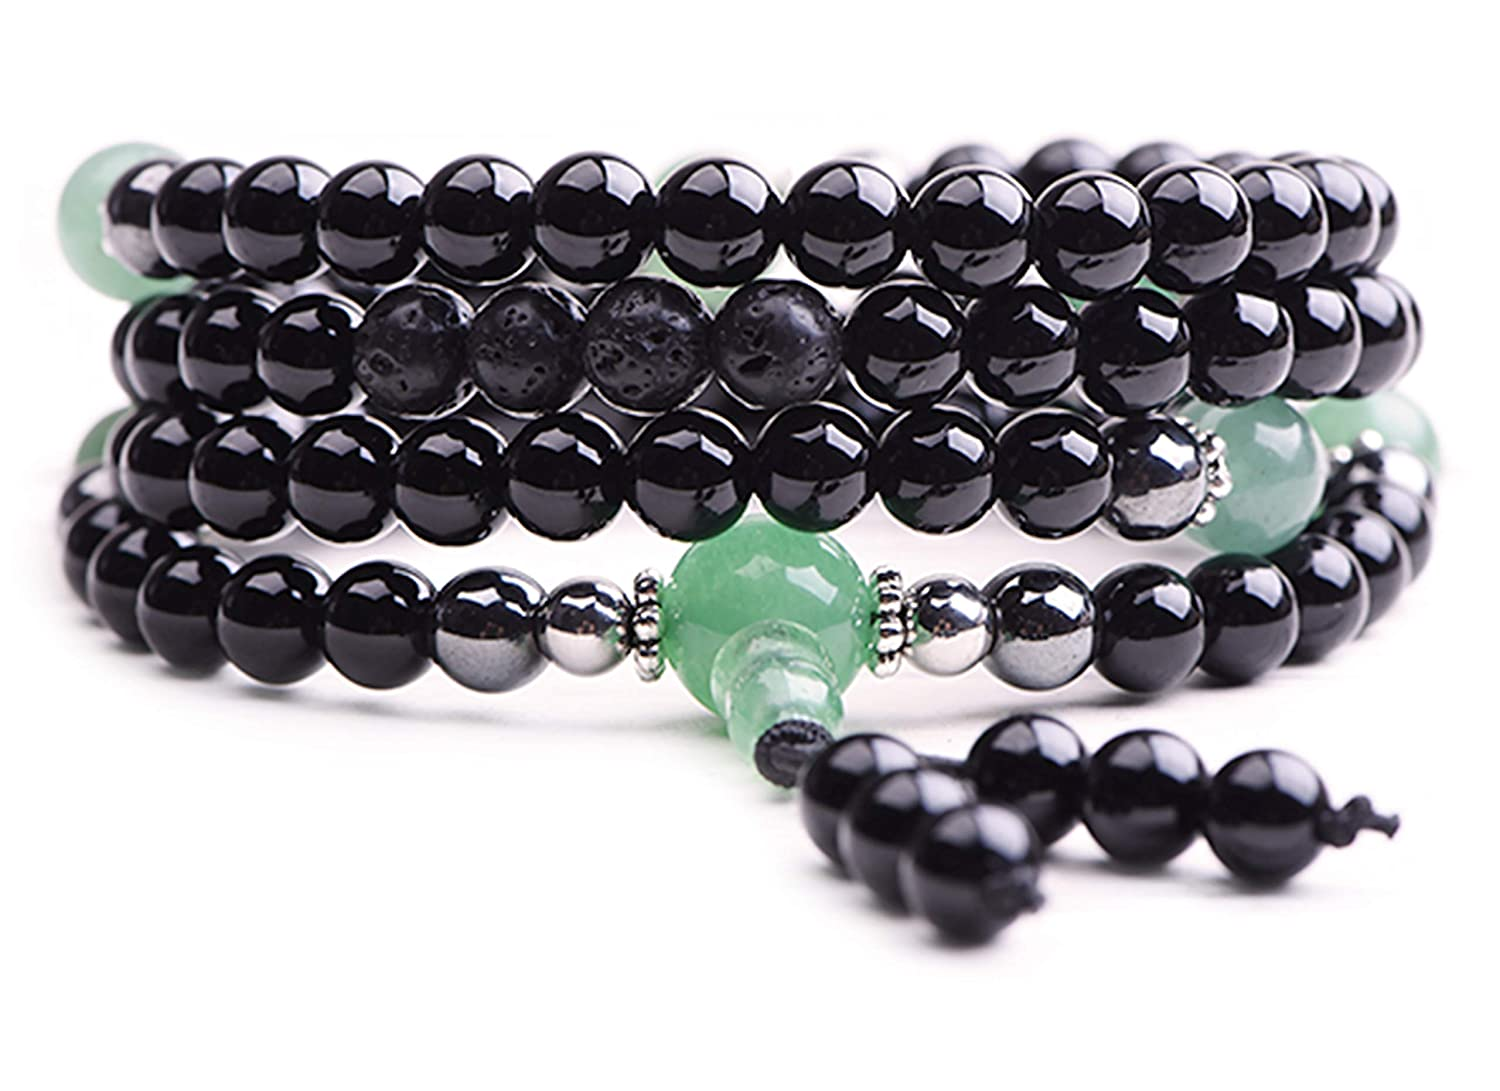 891a8e698fbe4 Onyx Bracelet - Prayer Beads - Anxiety Bracelet - Wrap Bracelet - Mala  Beads - Beaded Necklace - Tibetan Bracelet - Japa Mala Necklace for  Meditation